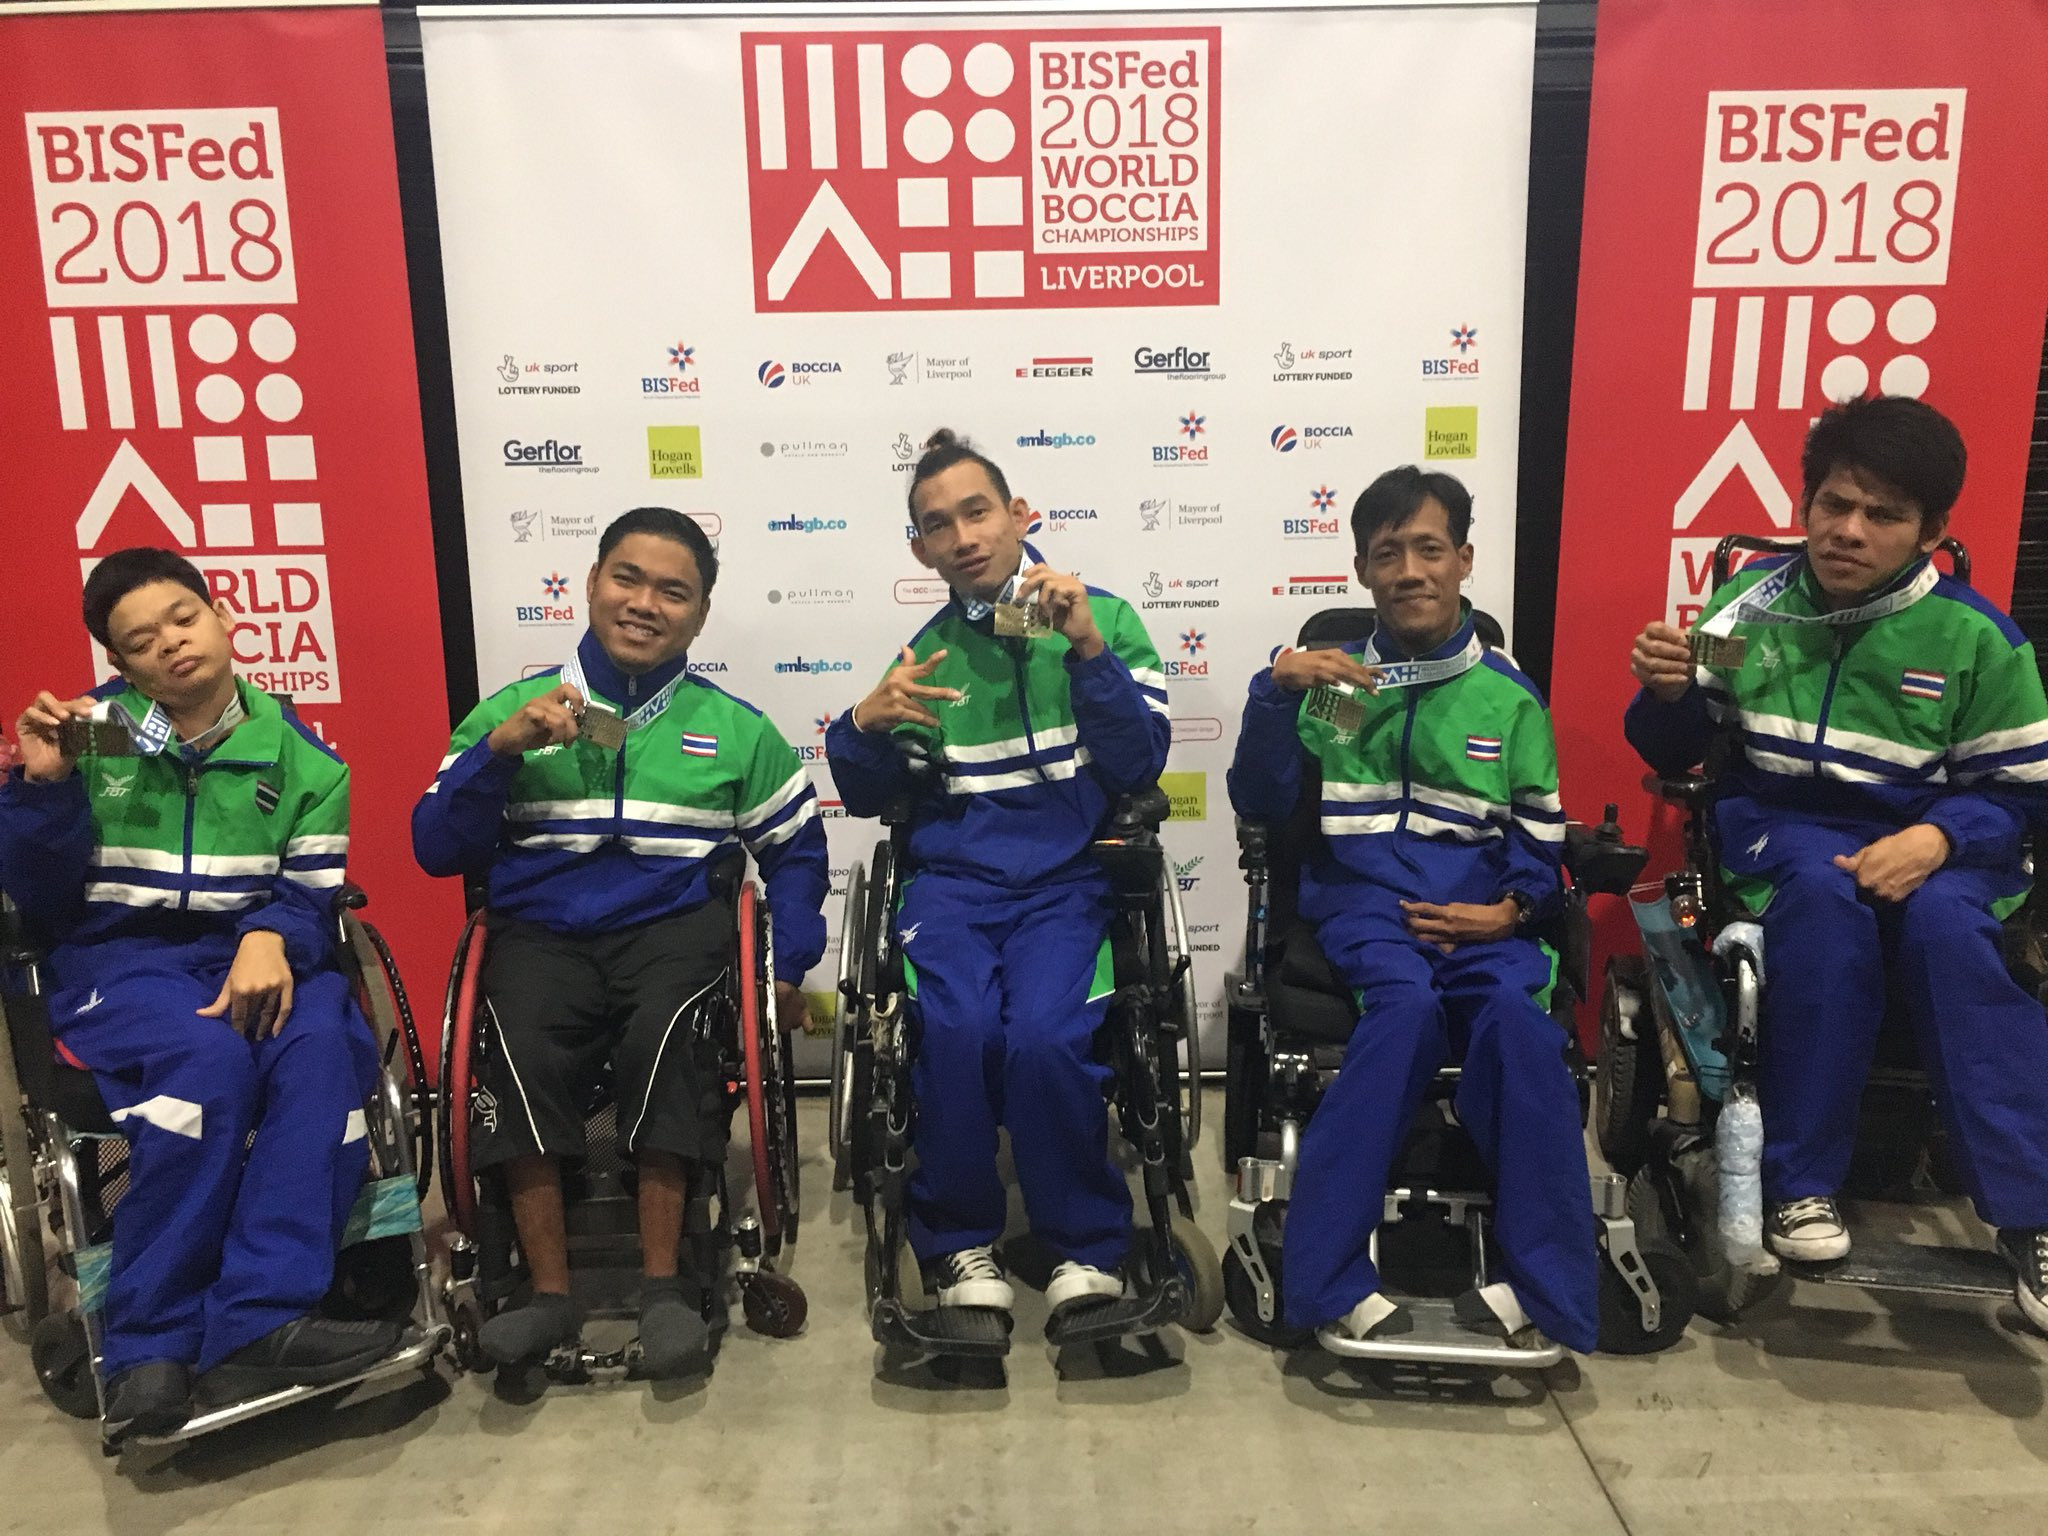 Boccia rankings released after 2018 World Championships